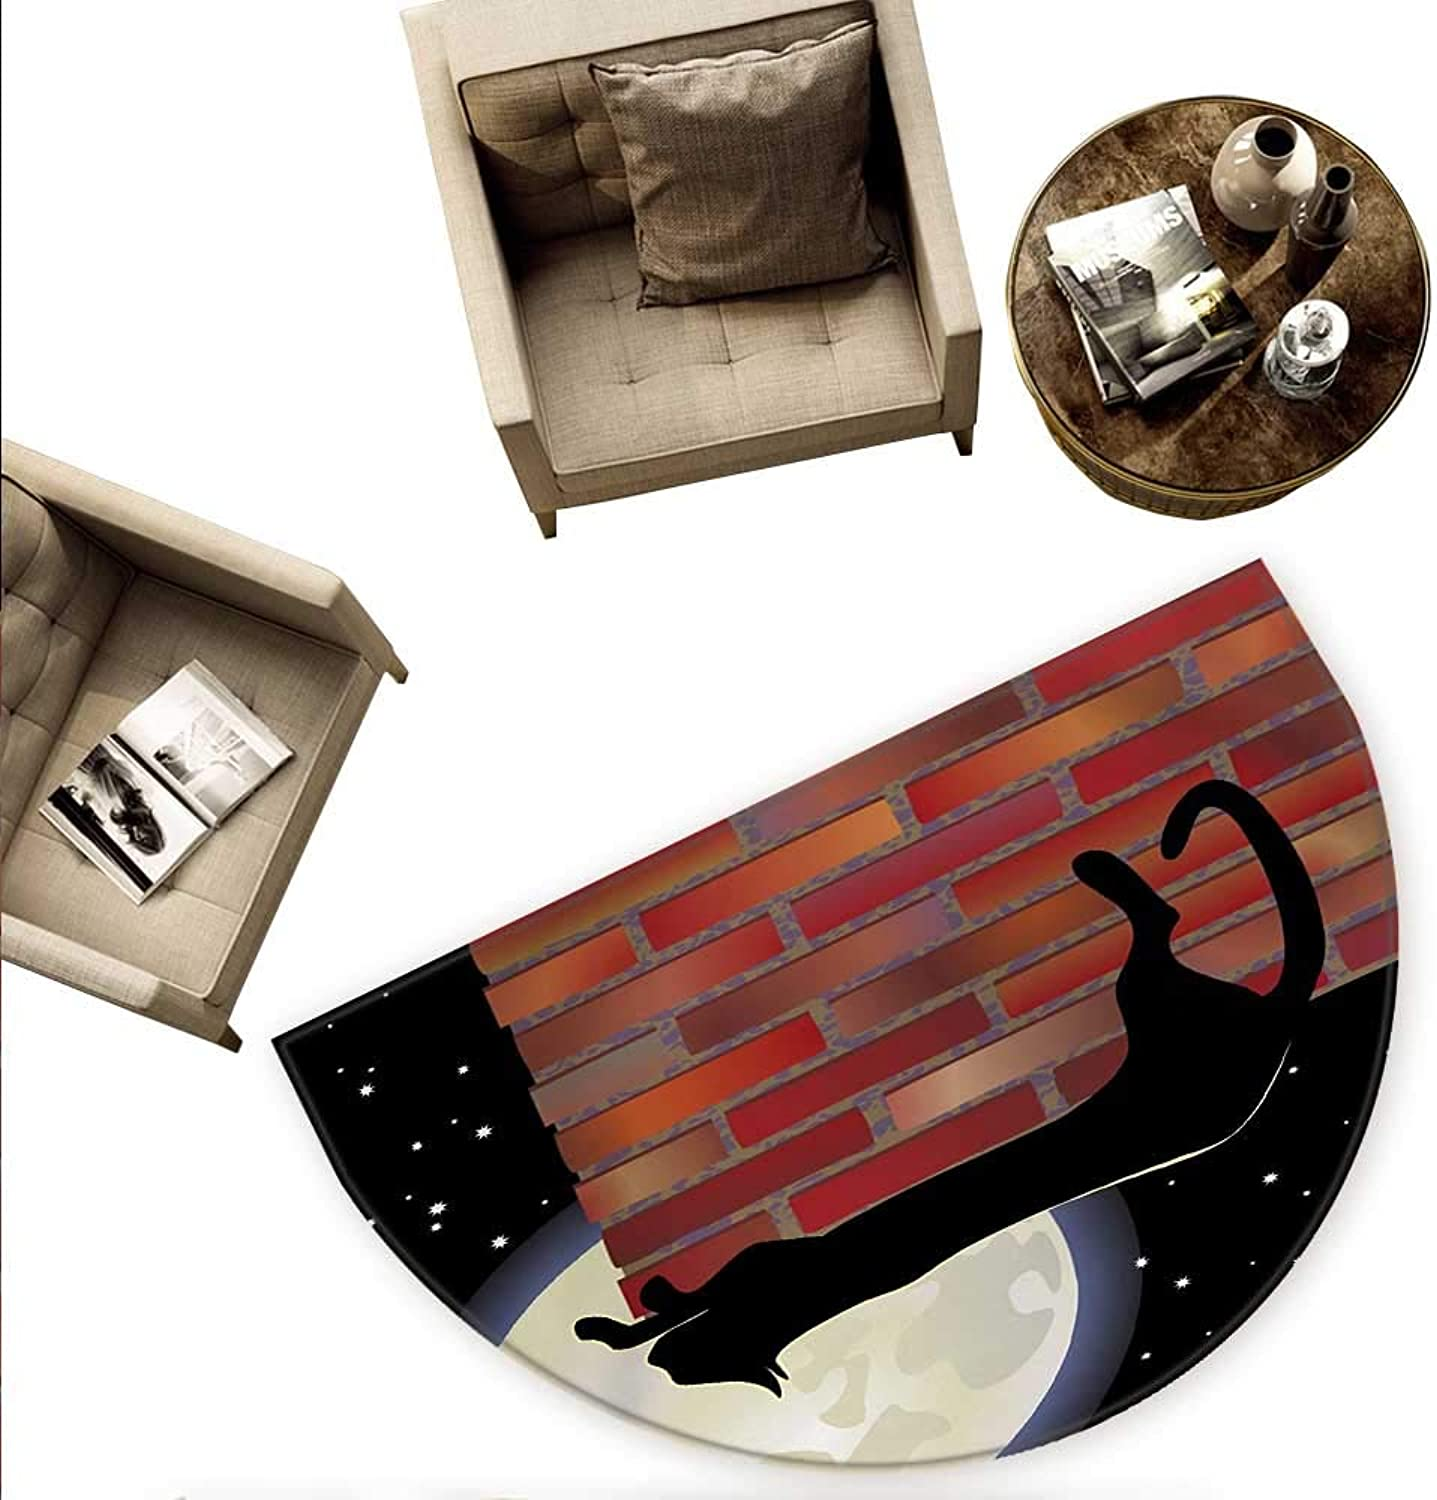 Moon Semicircular Cushion Cat Silhouette Resting on a Brick Wall in a Starry Night Full Moon Imagery Entry Door Mat H 70.8  xD 106.3  Black Ivory Vermilion